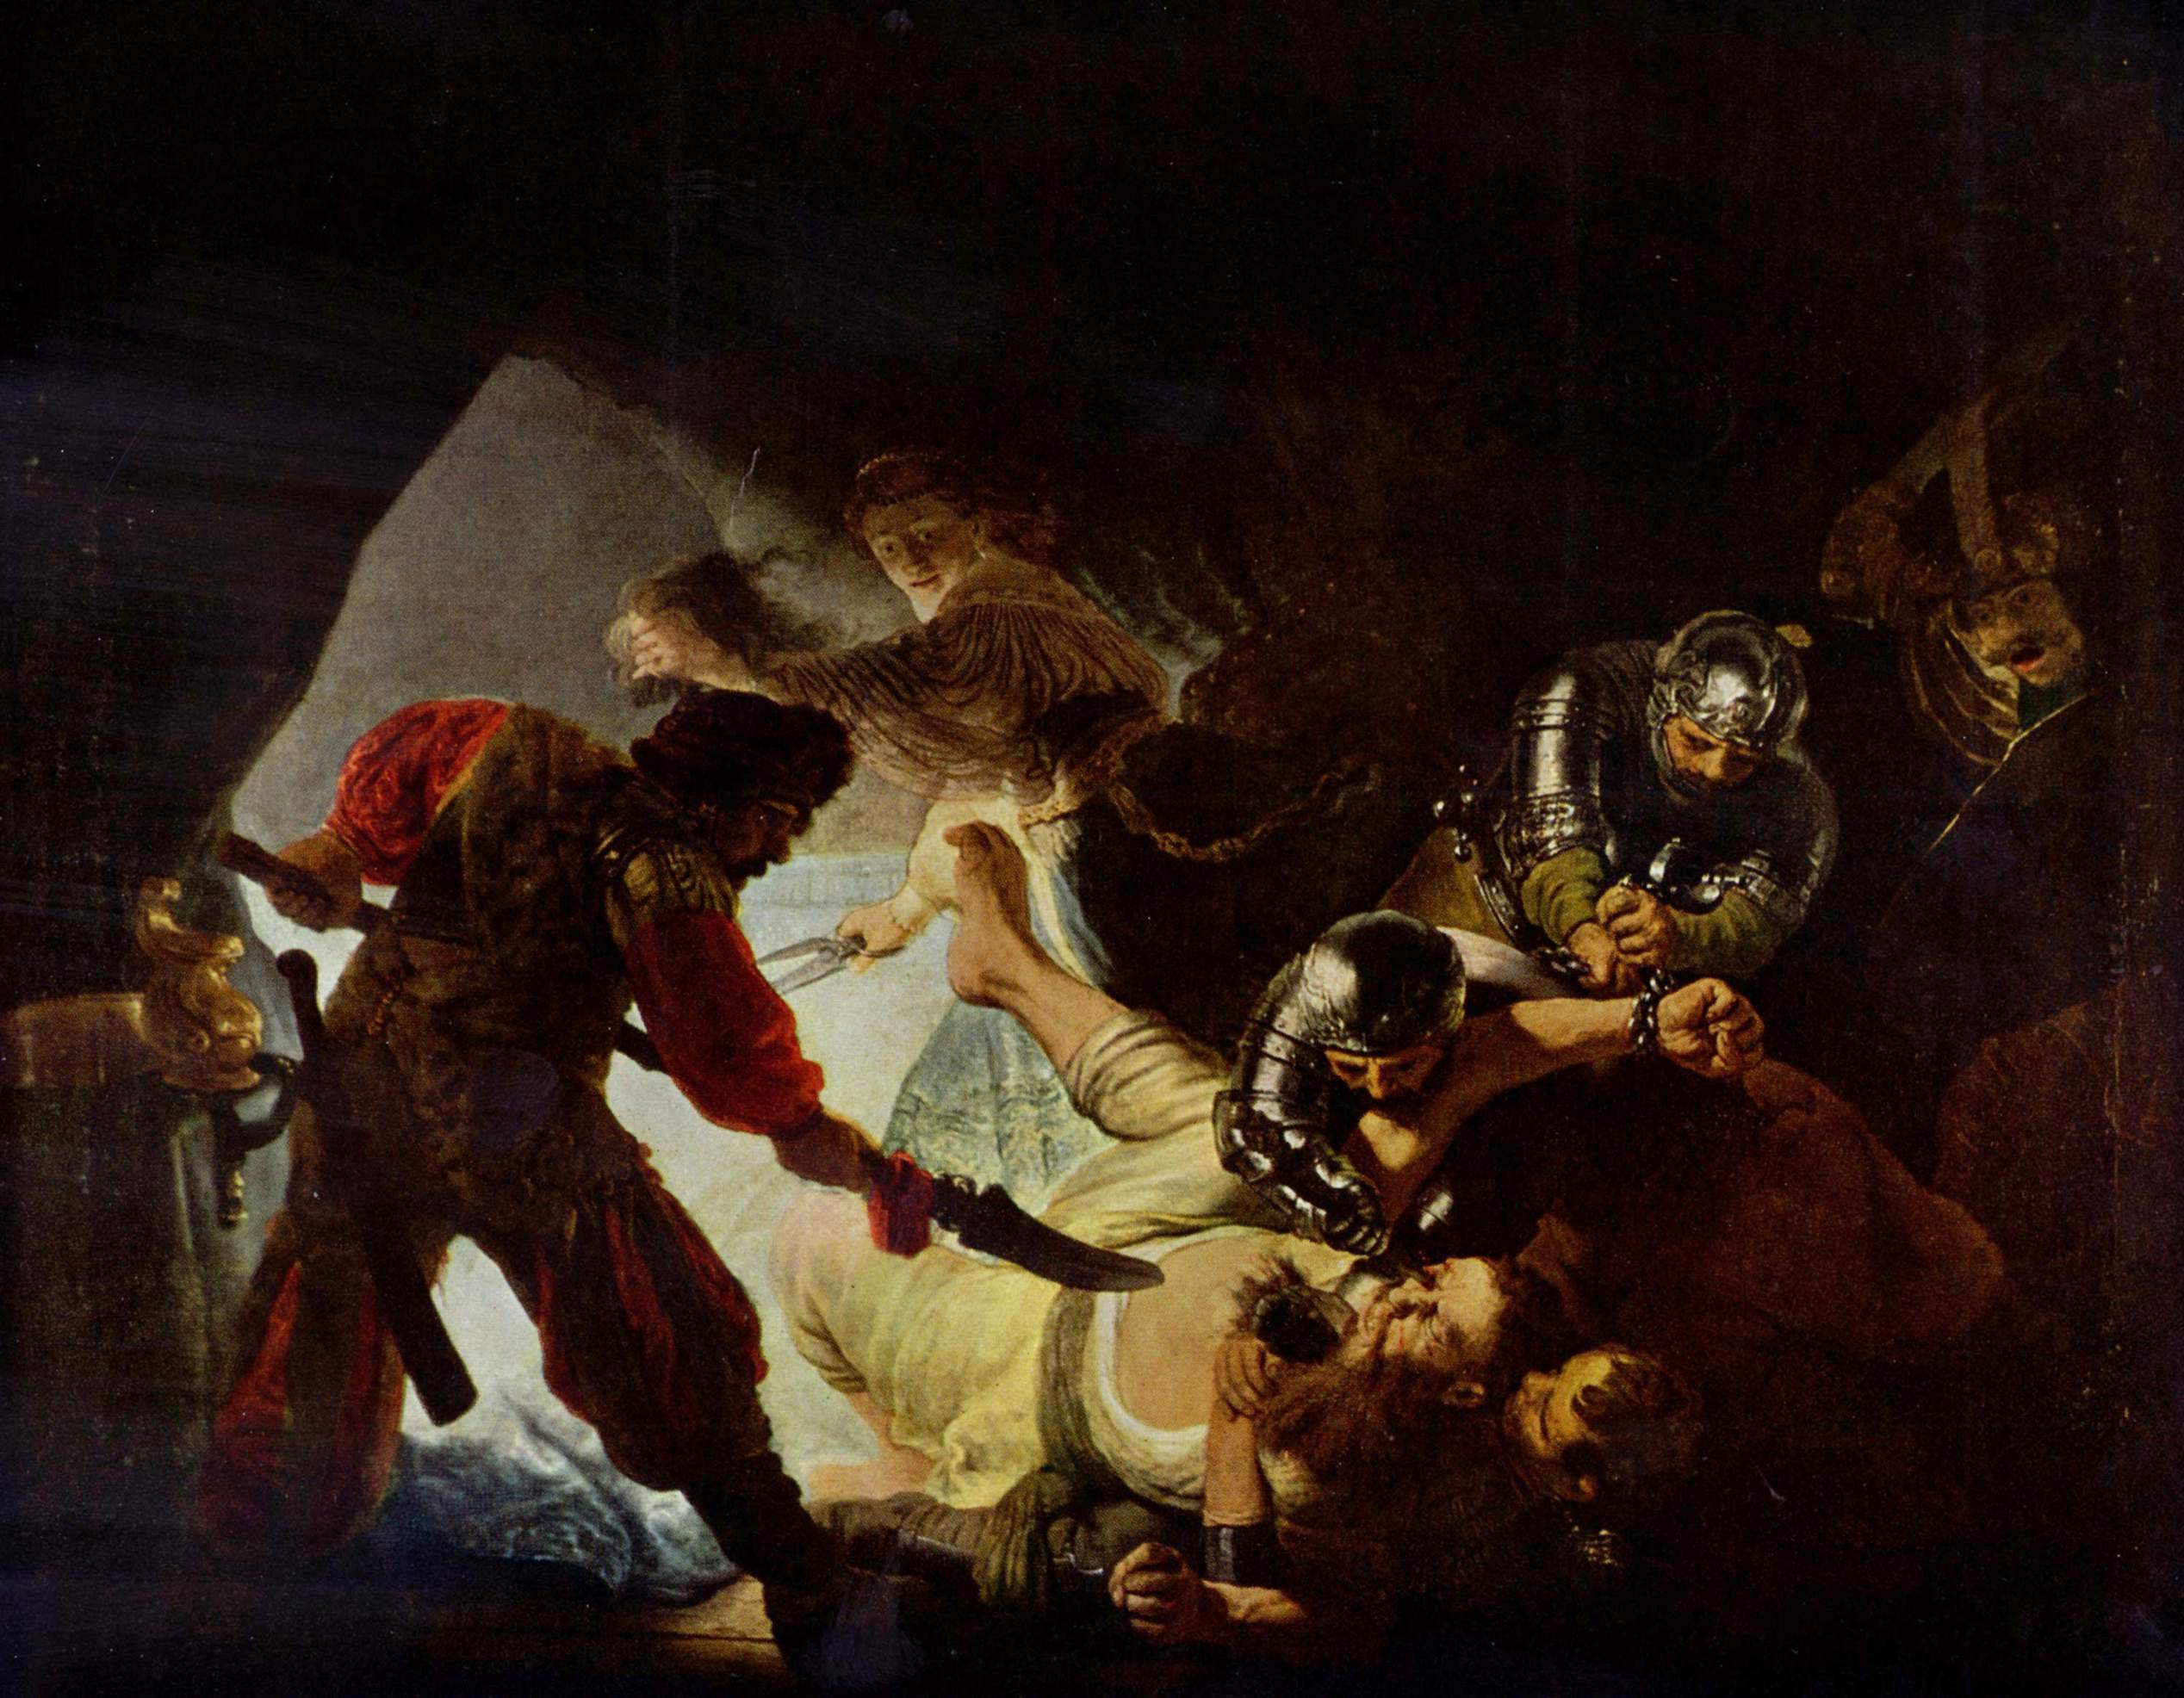 Rembrandt Harmensz. van Rijn 041-The Blinding of Samson 1636